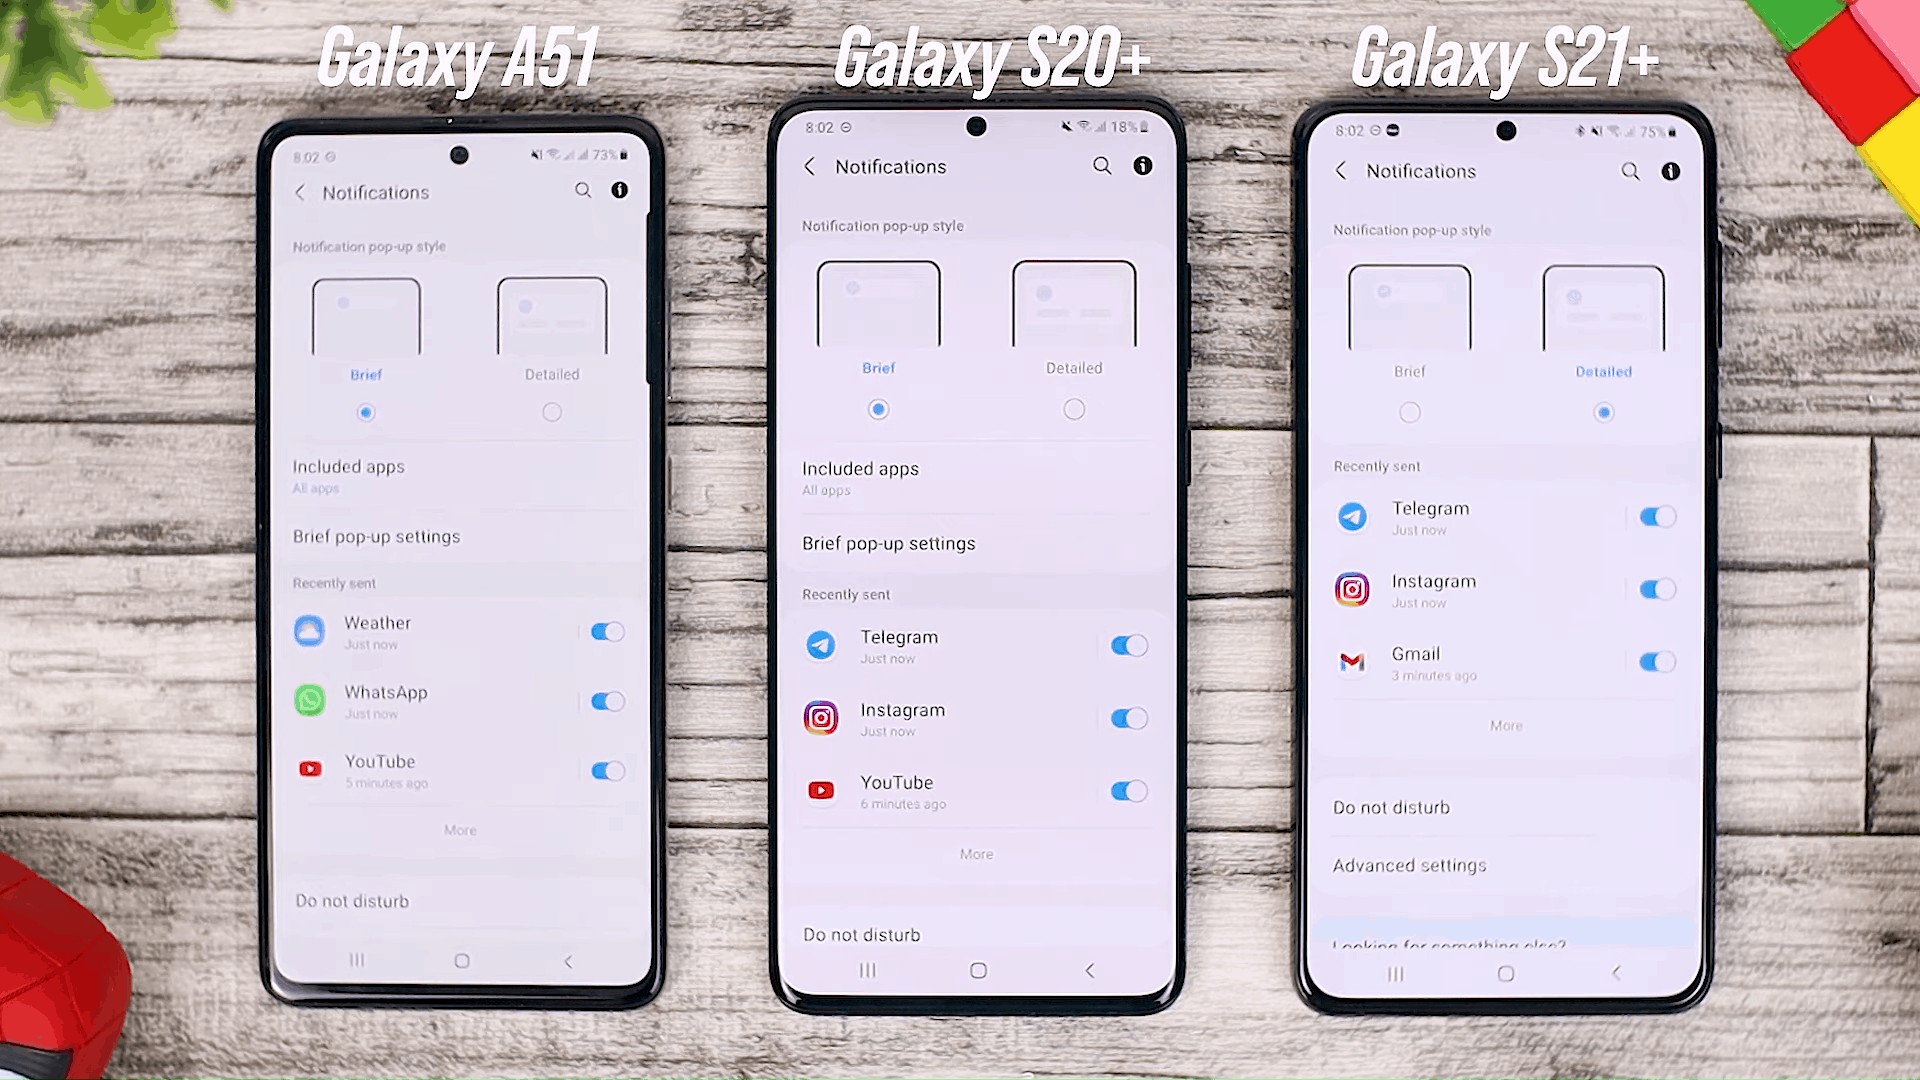 Bubble Notification & News Smart Pop-up View - Fitur One UI 3.0 di Galaxy A51 dan Perbandingannya dengan Galaxy S20+ dan One UI 3.1 di Galaxy S21+